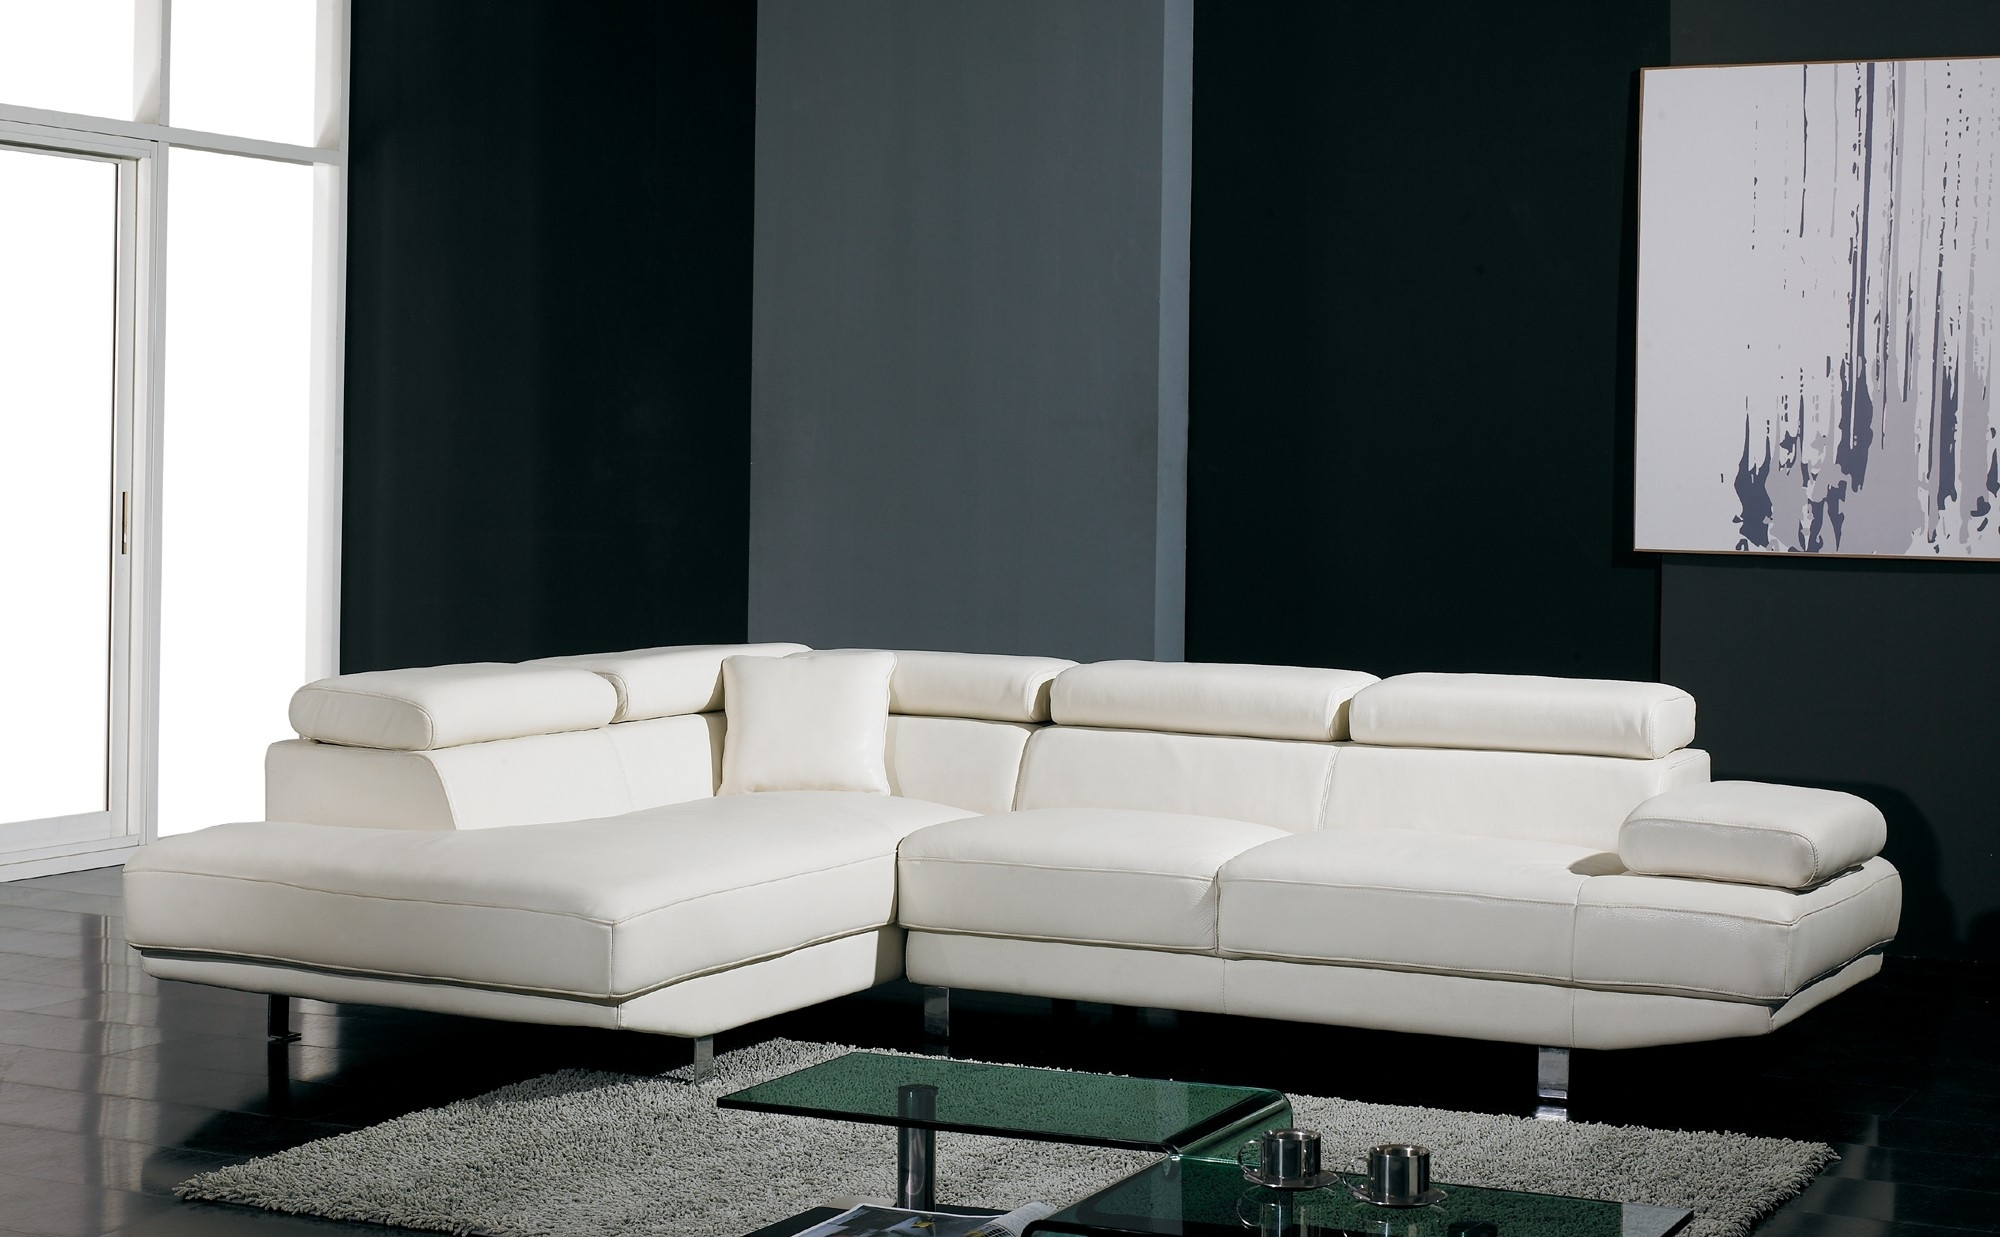 Contemporary Sectional Couch Modern Sectional Sofas For Small With Favorite Contemporary Sectional Sofas (View 2 of 15)